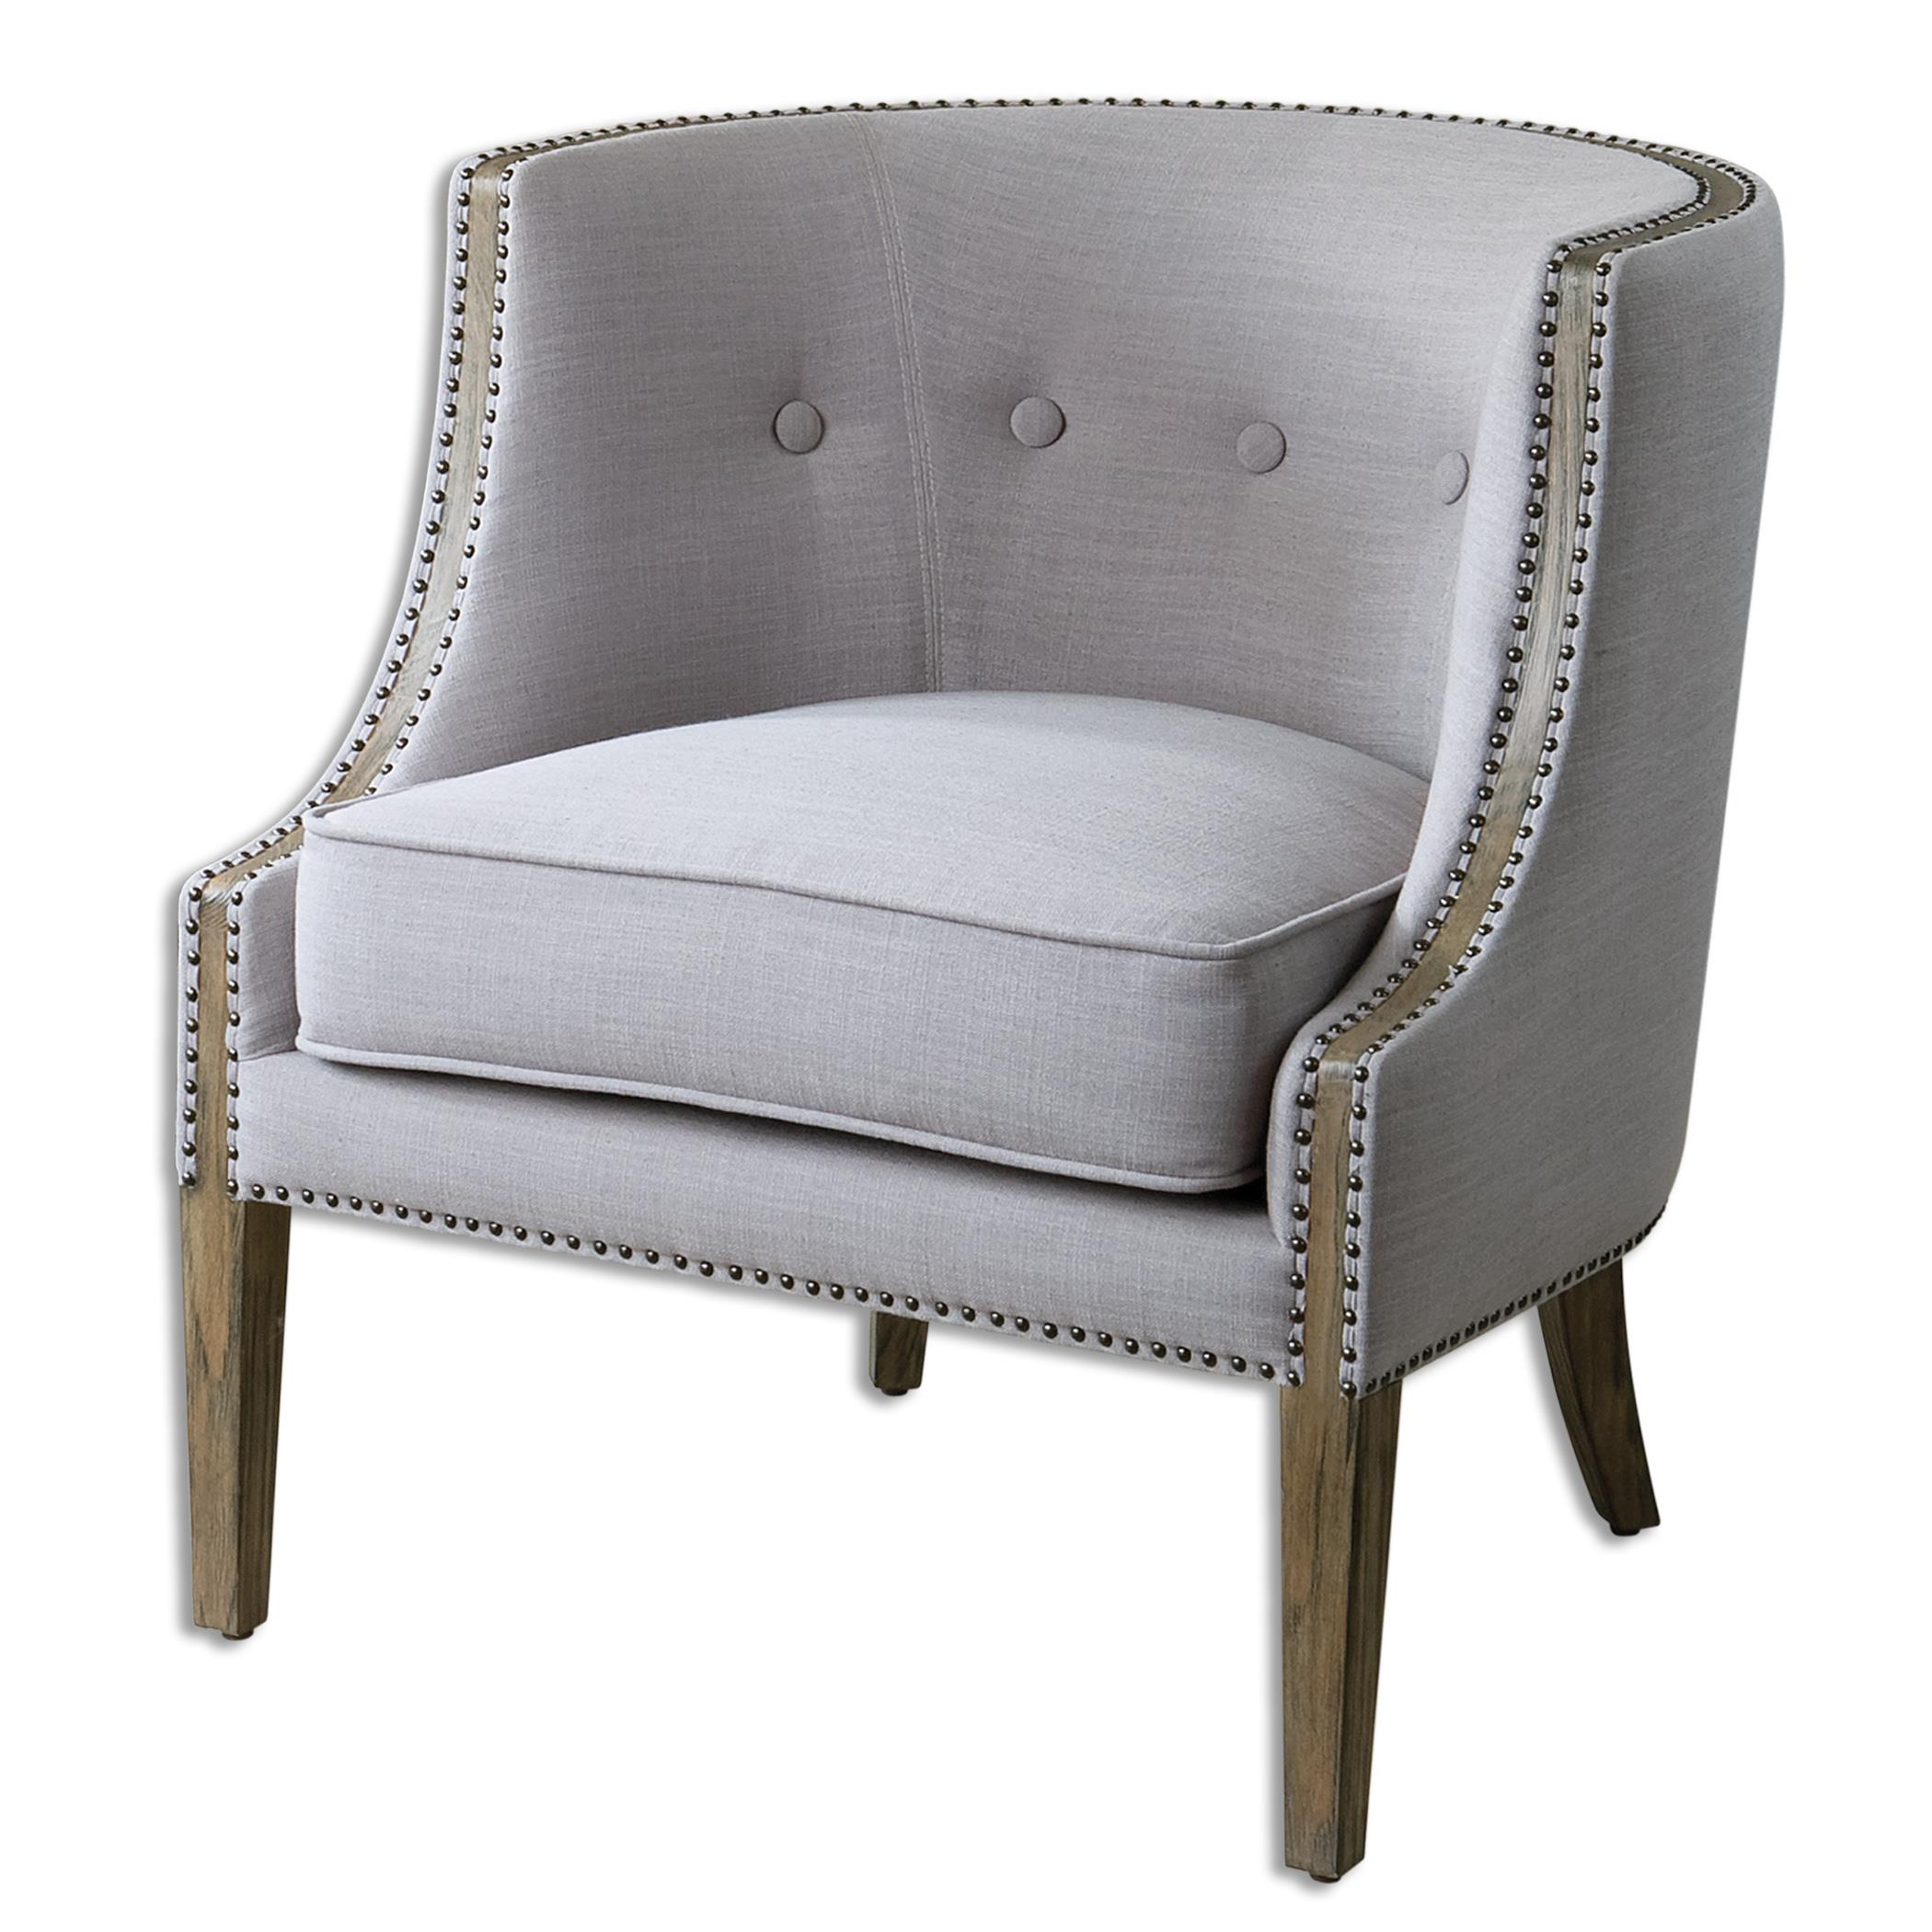 Accent Furniture - Accent Chairs Gamila Light Gray Accent Chair by Uttermost at Factory Direct Furniture